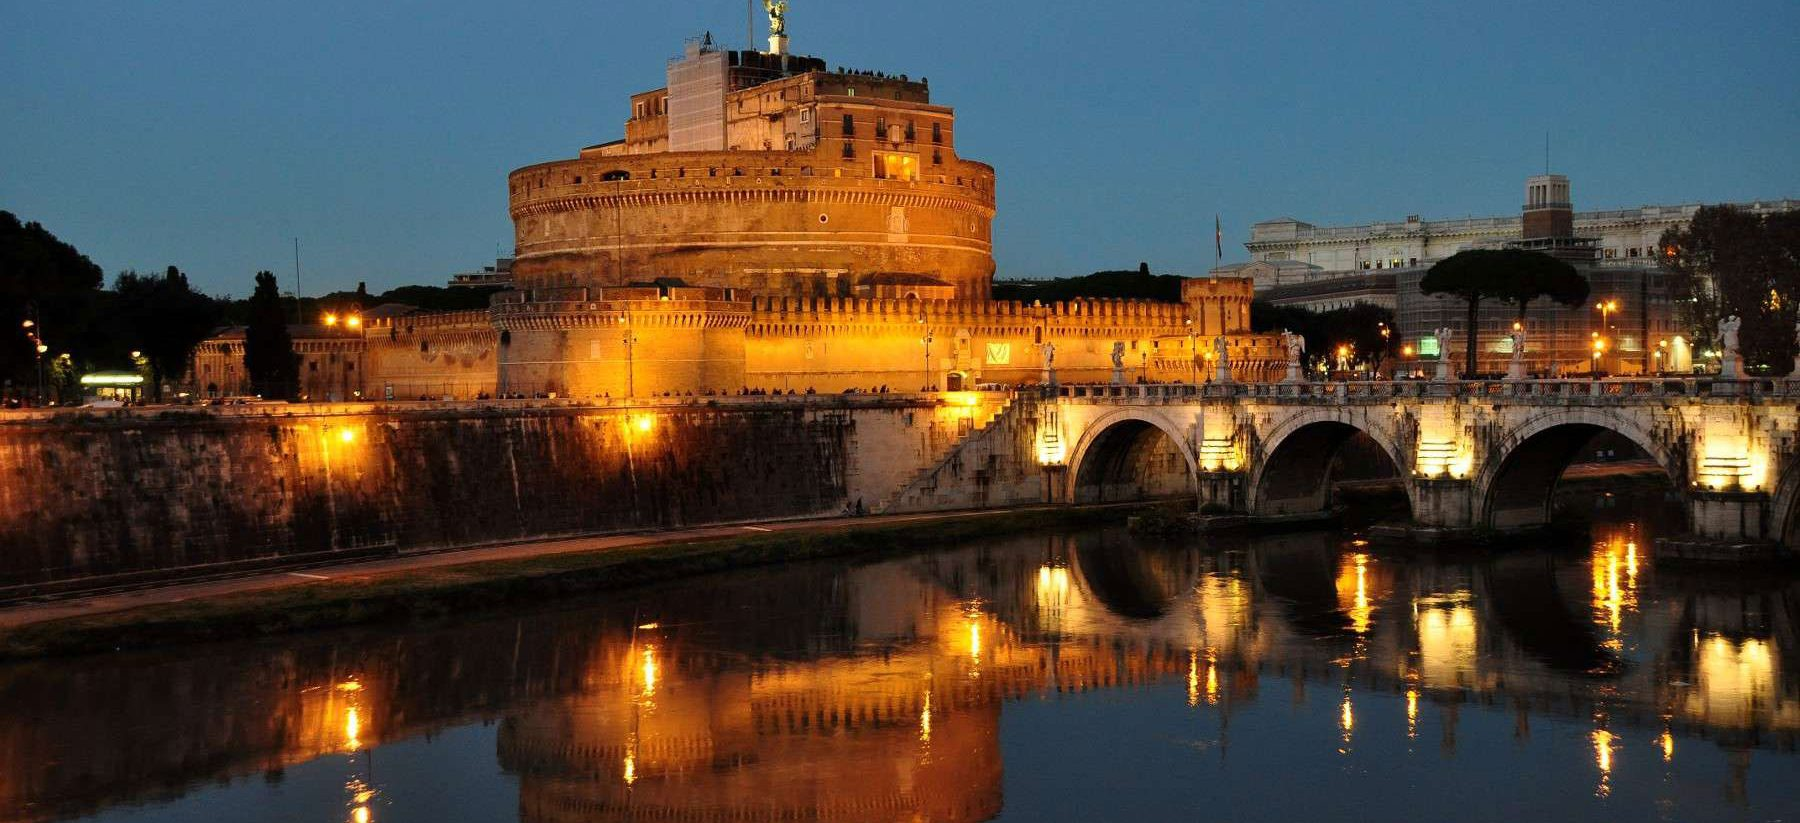 BDB Luxury Rooms Navona Angeli | Luxury room in Rome close to Castel Sant'Angelo